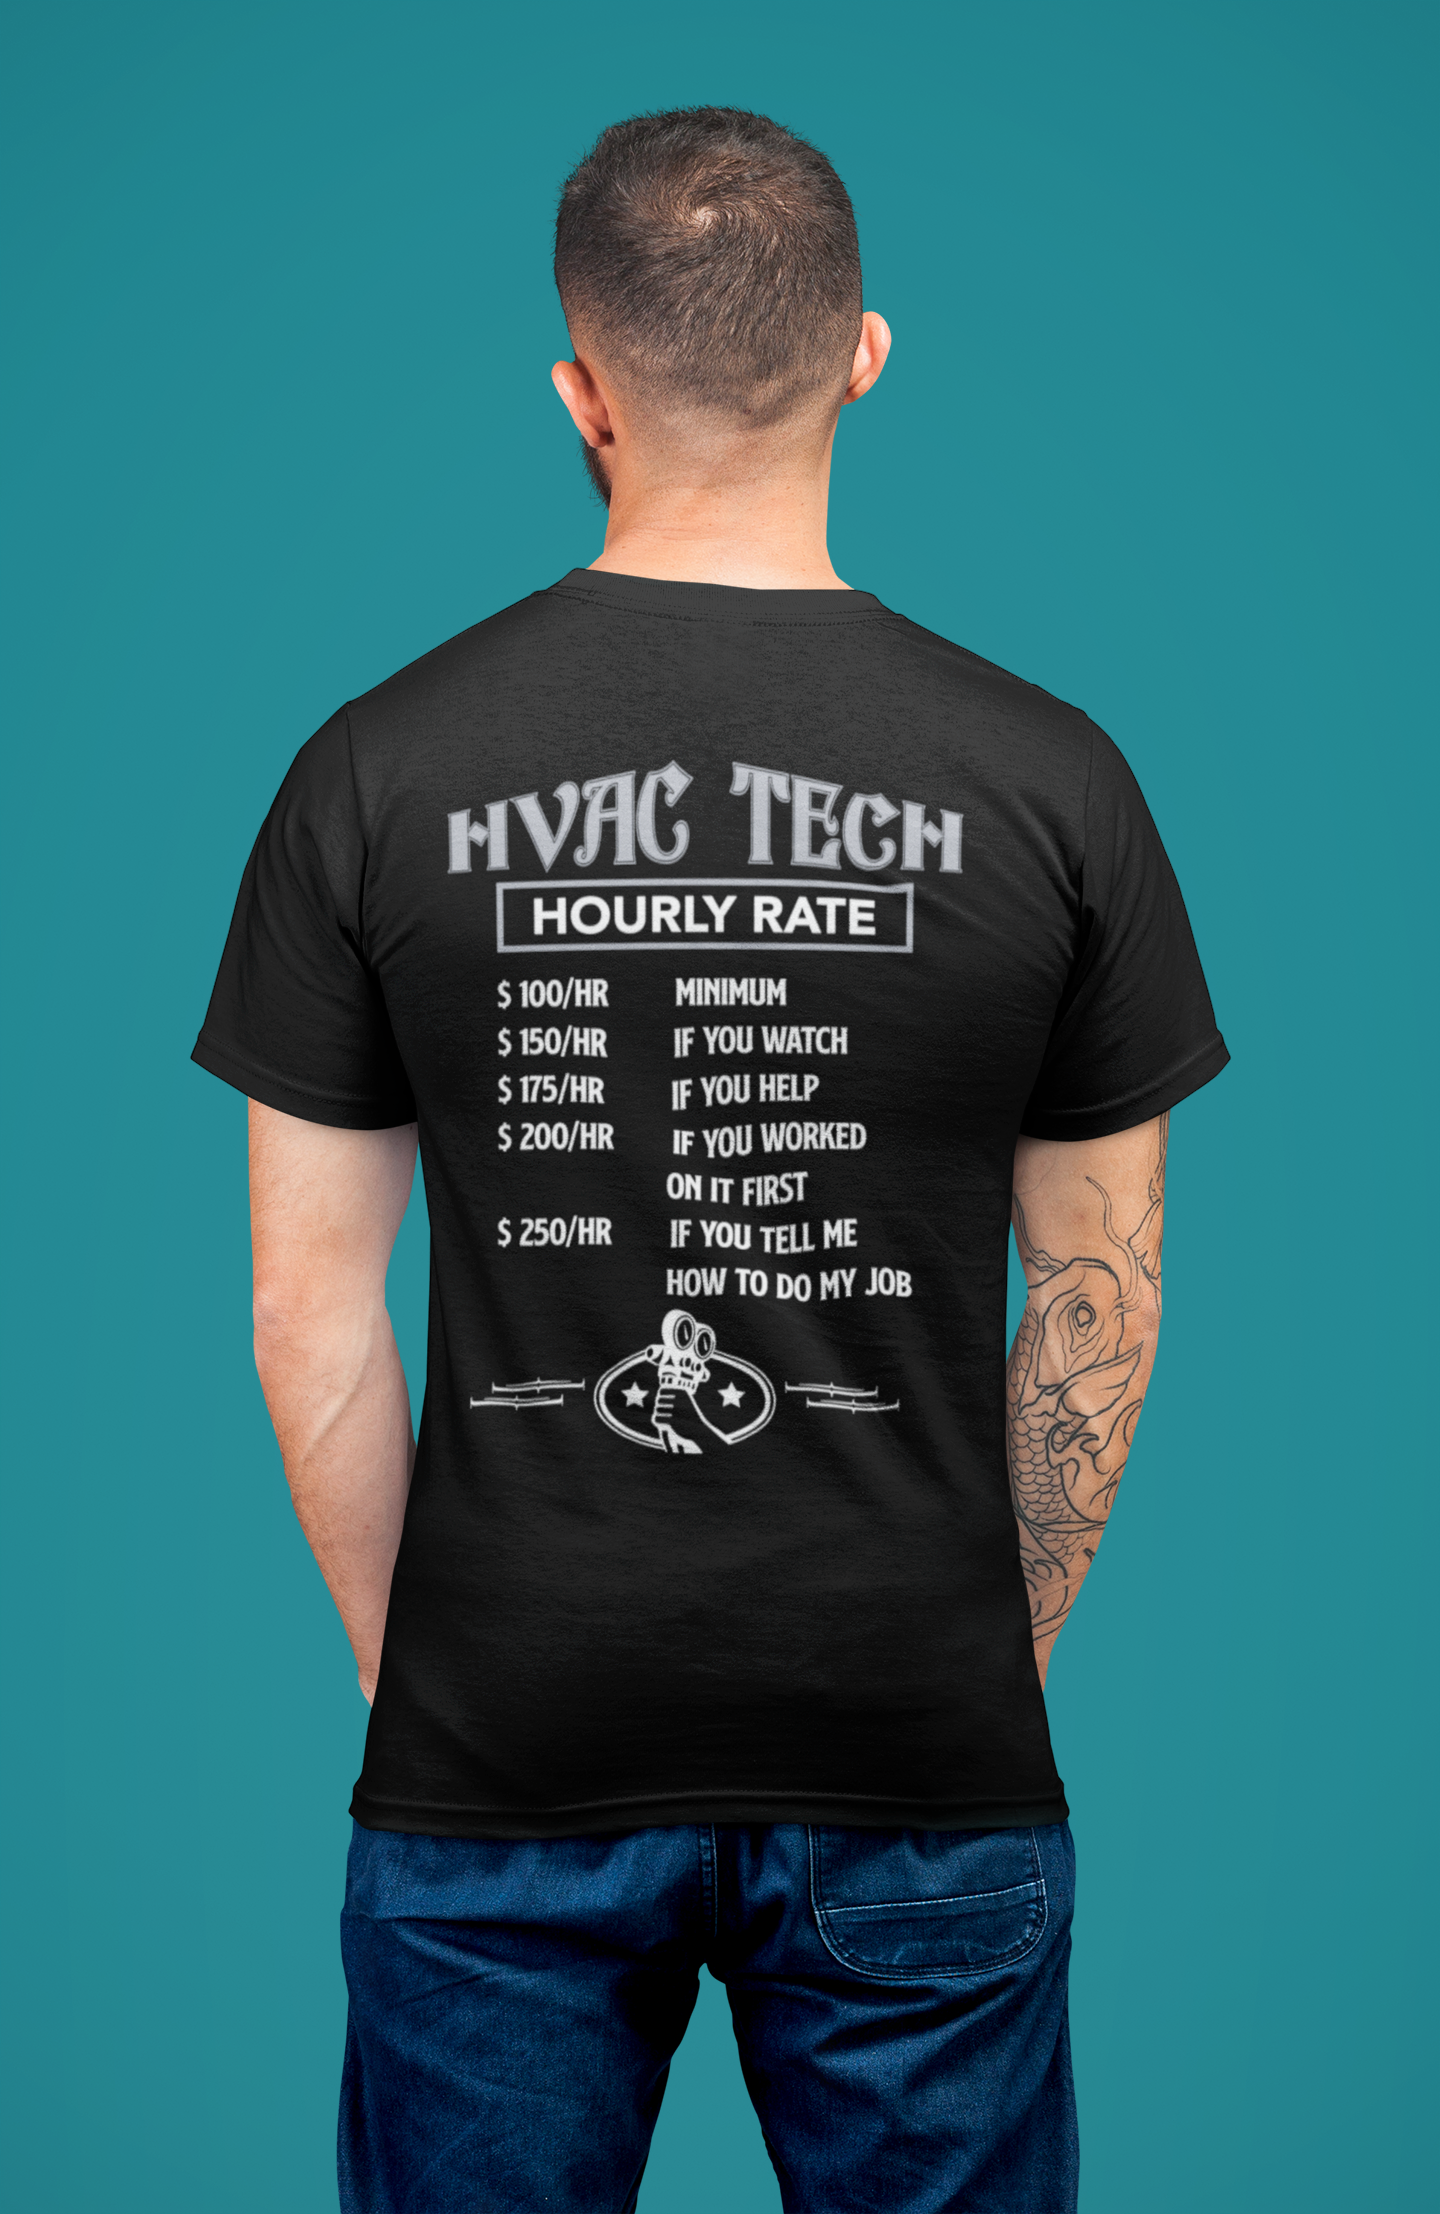 back-view-mockup-of-a-tattooed-man-wearing-a-round-neck-tee-at-a-studio-22342.png